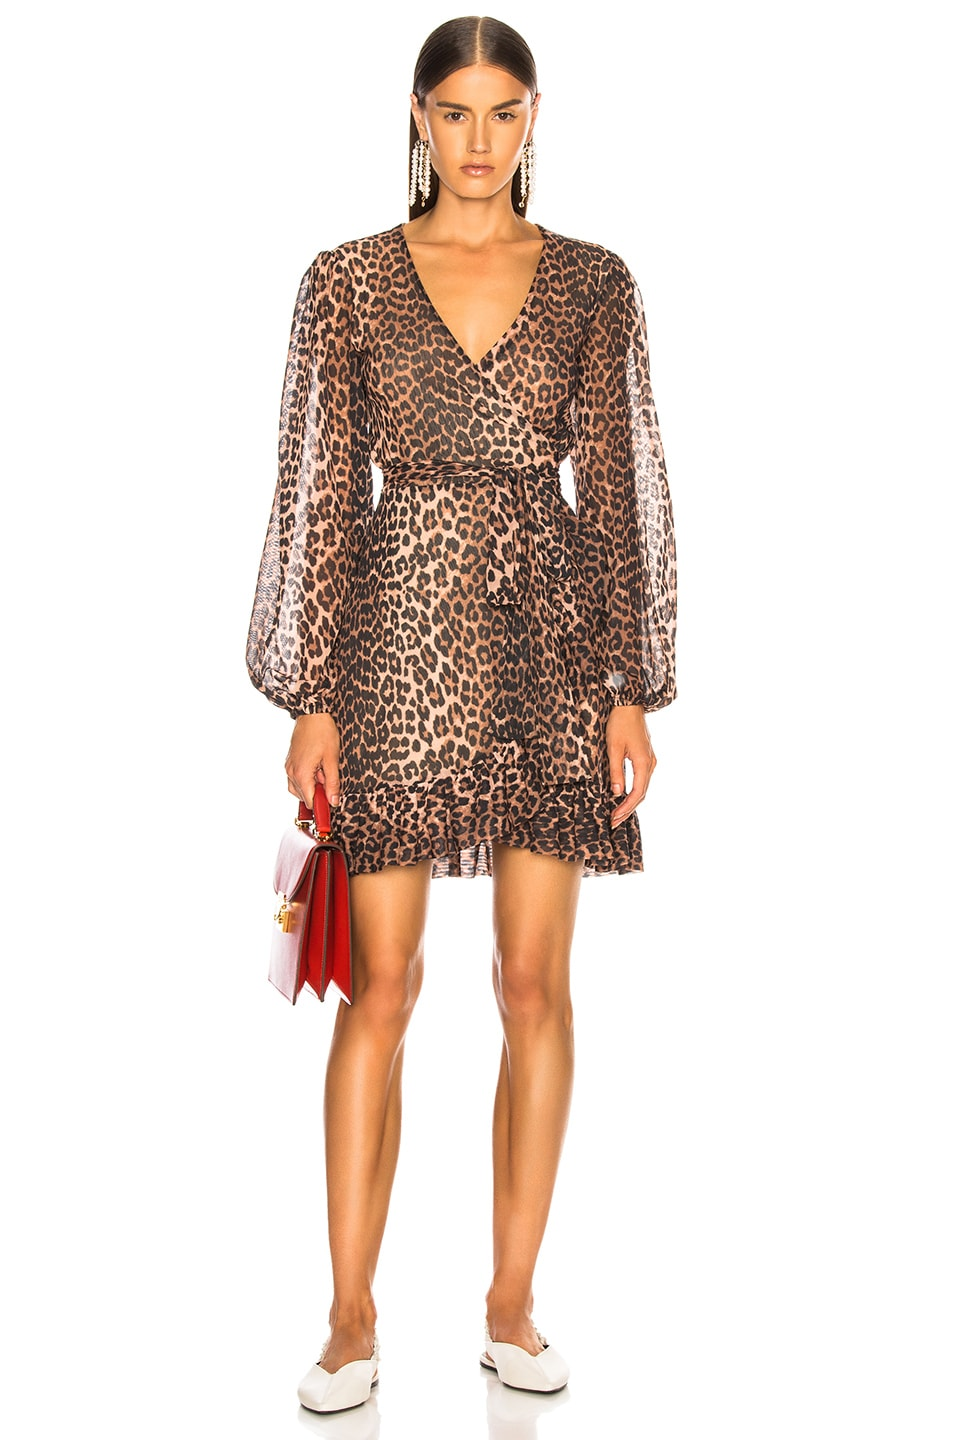 56114f31 Image 1 of Ganni Printed Mesh Dress in Leopard